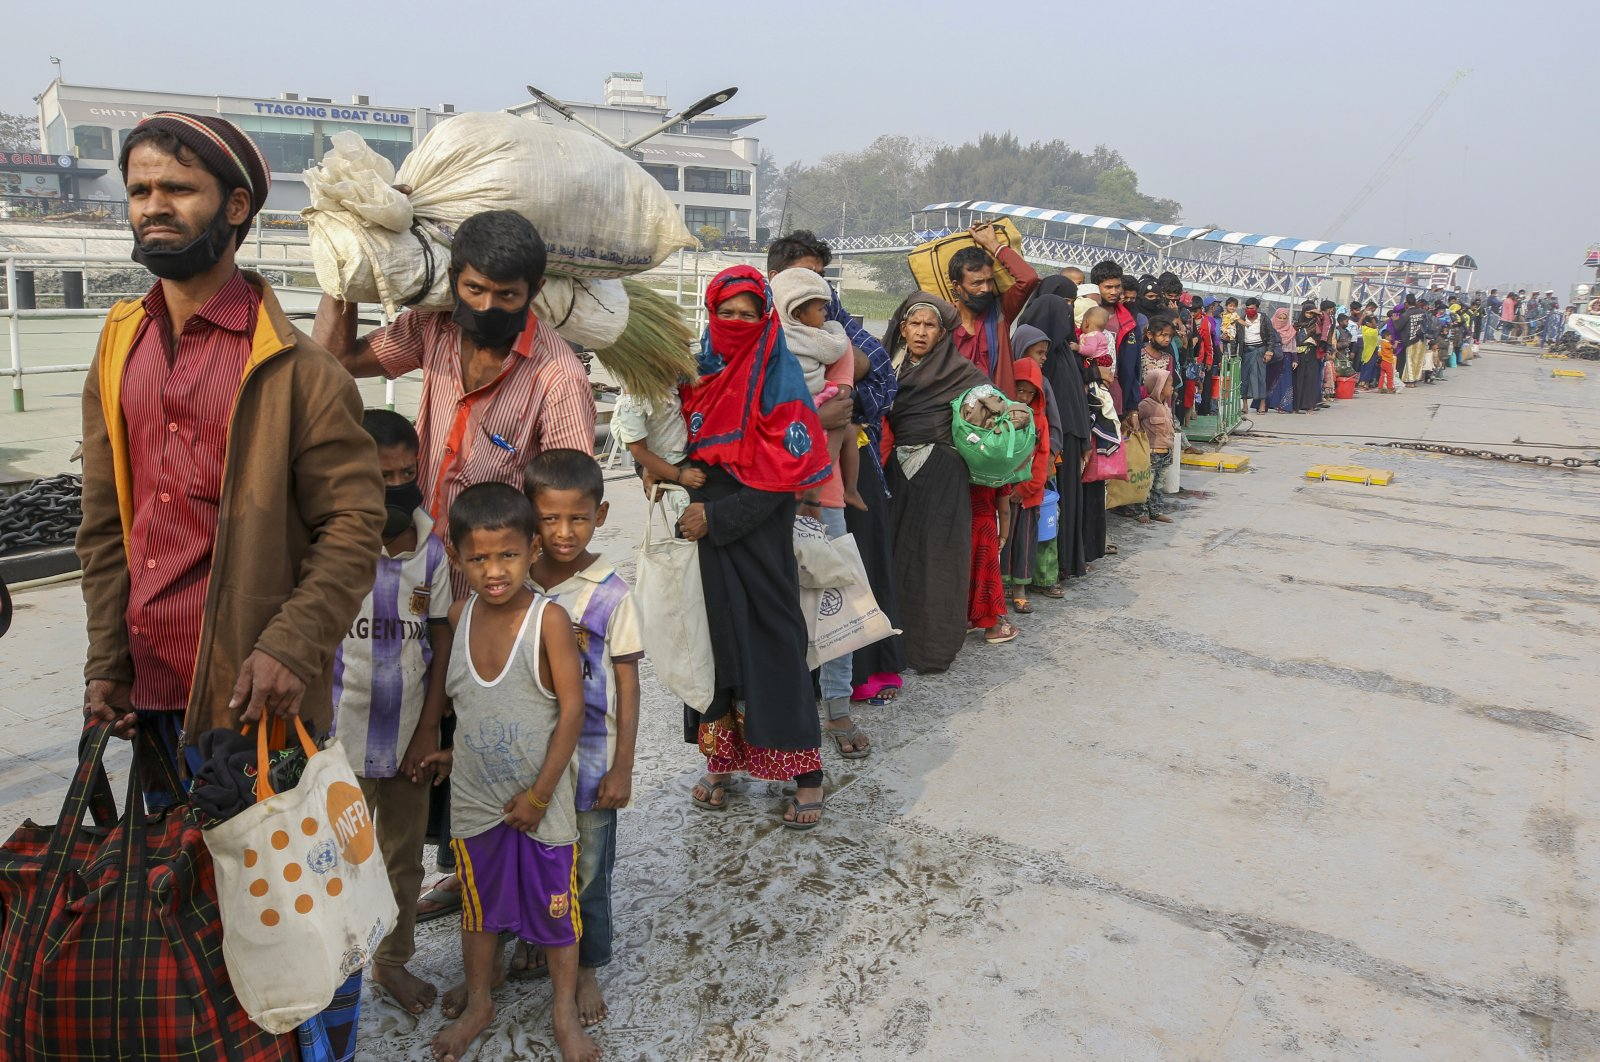 Rohingya refugees headed to the Bhasan Char island prepare to board navy vessels from the south eastern port city of Chattogram, Bangladesh, Feb. 15, 2021. (AP Photo)